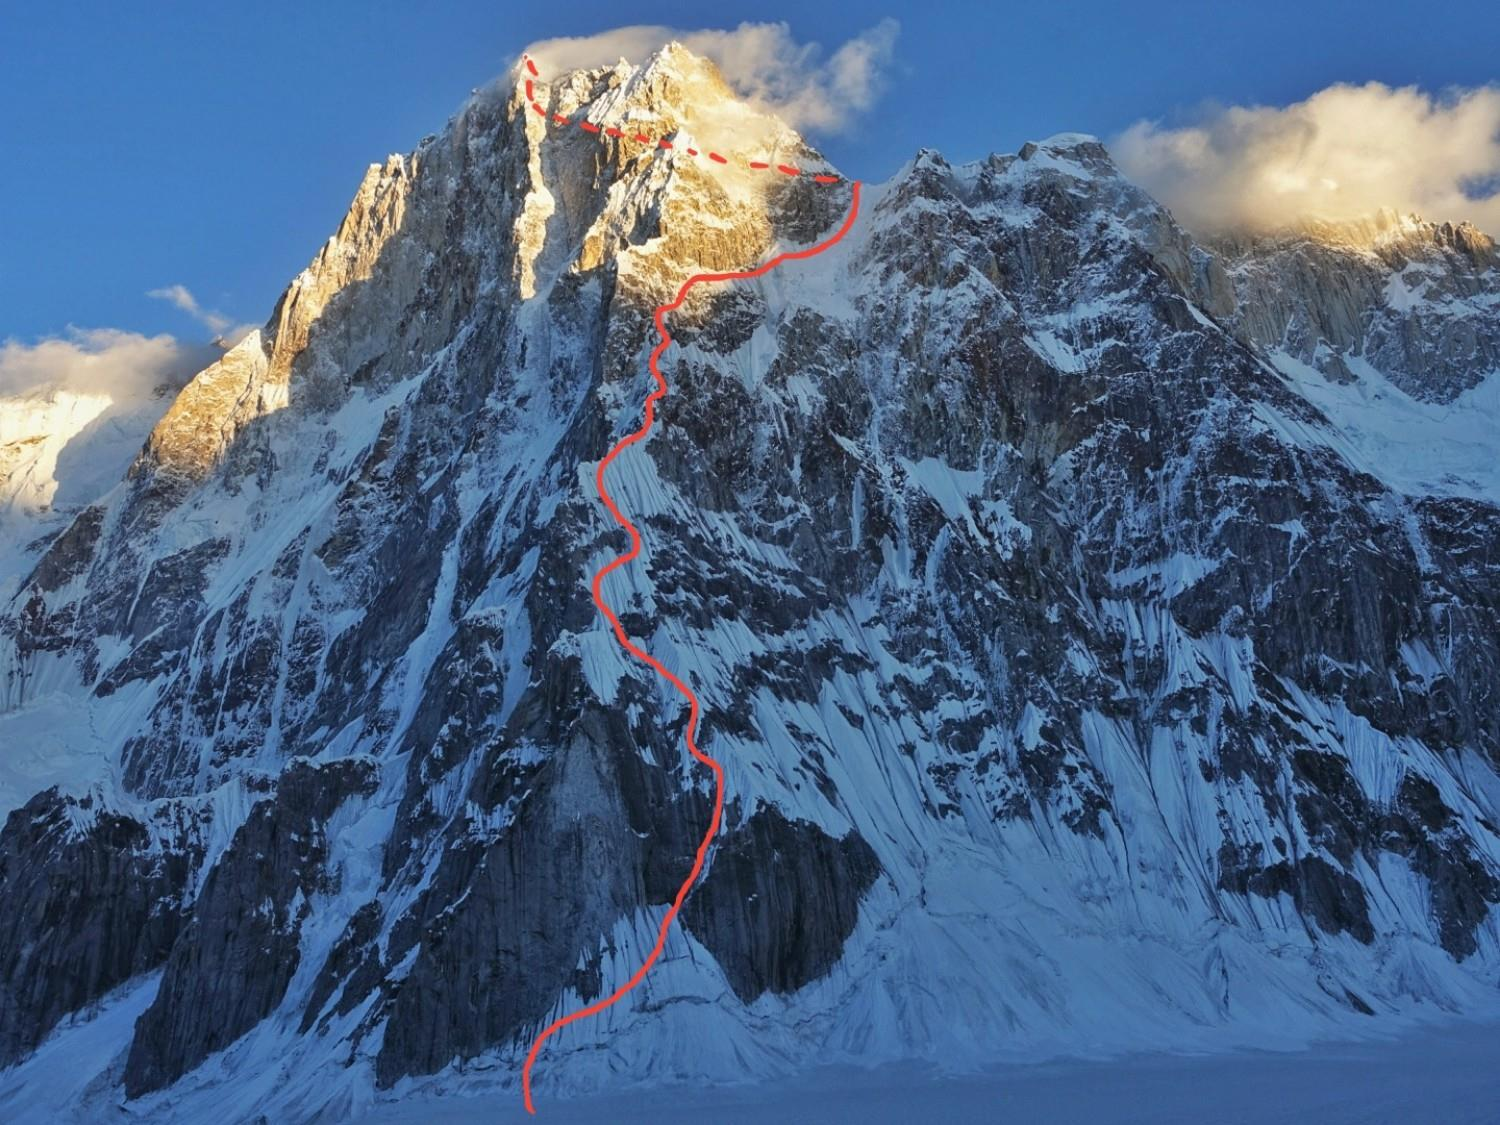 The red line shows the route taken by Cesen, Livingstone and Strazar. [Image] Tom Livingstone